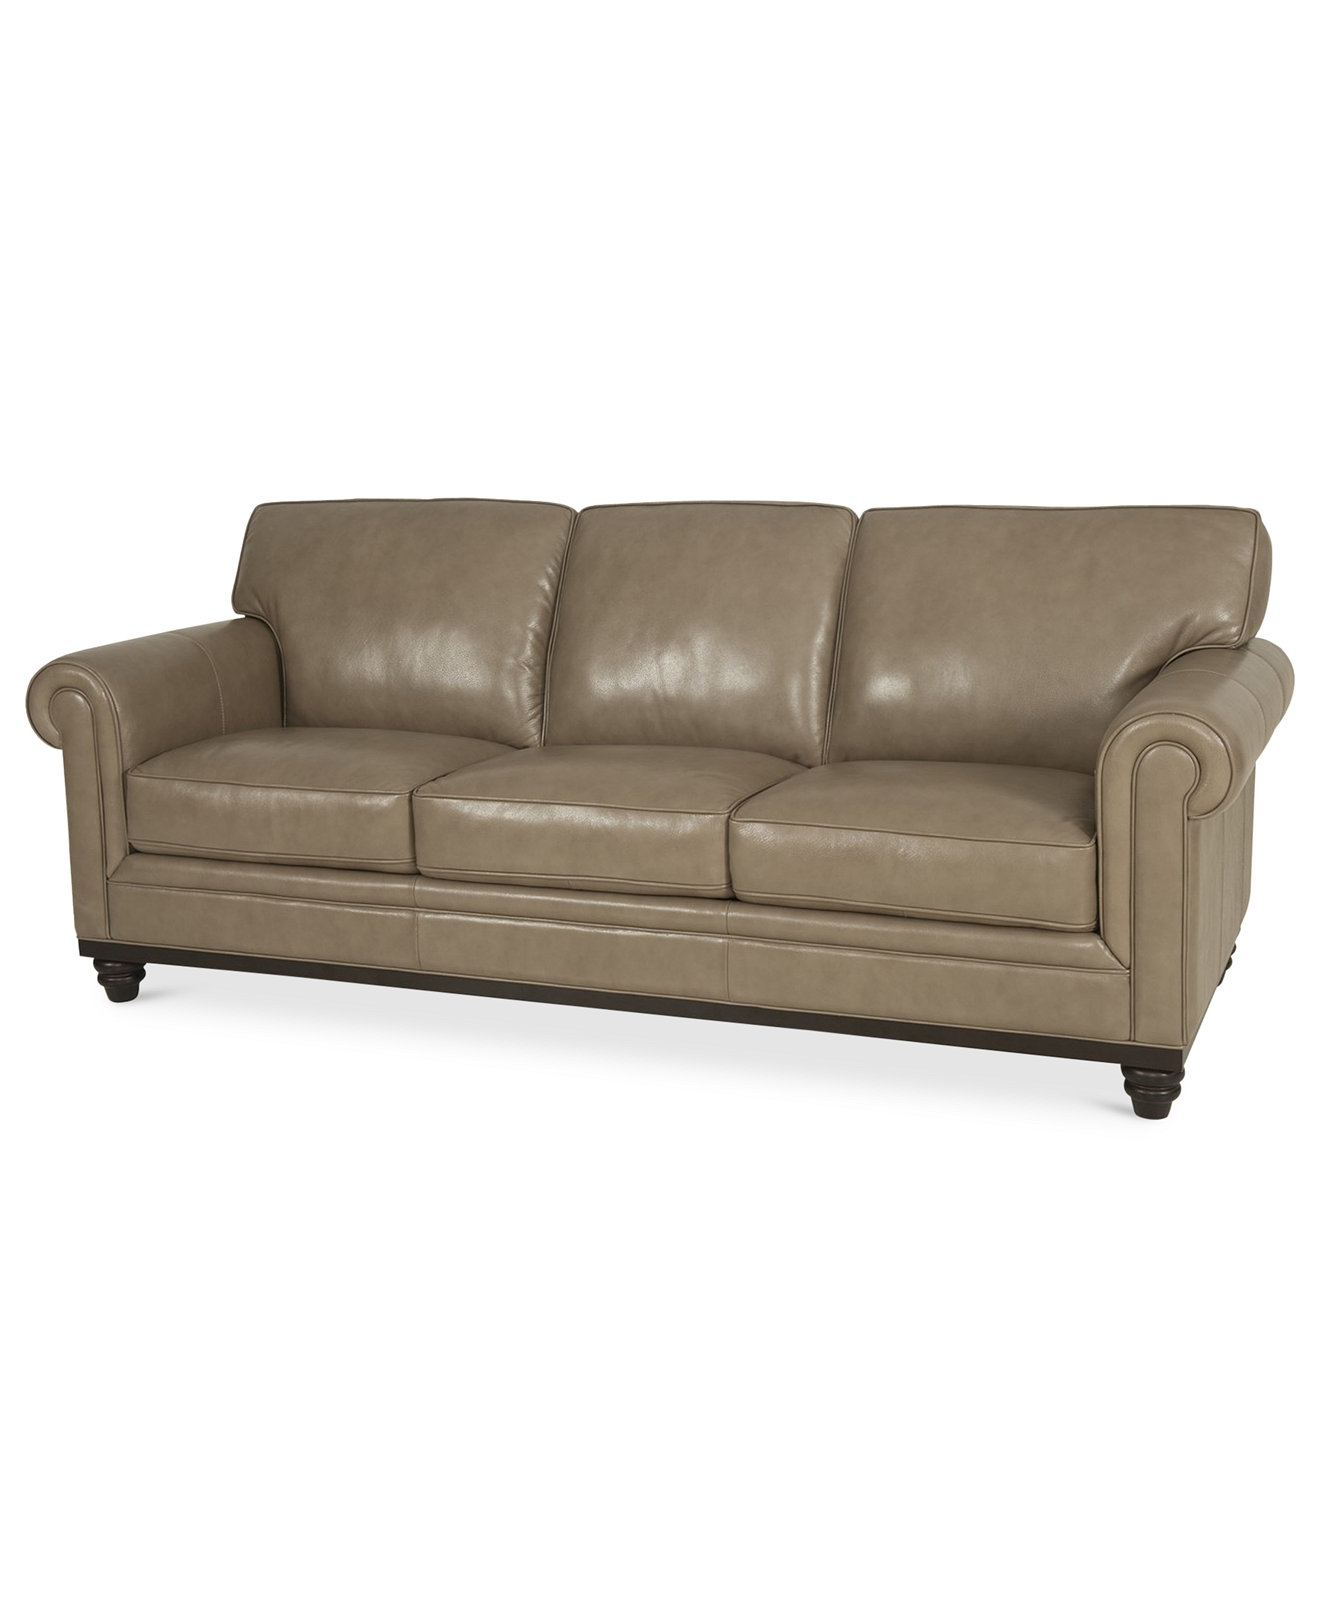 Macys Leather Sofas With Most Popular Sofas: Macys Leather Chair (View 17 of 20)